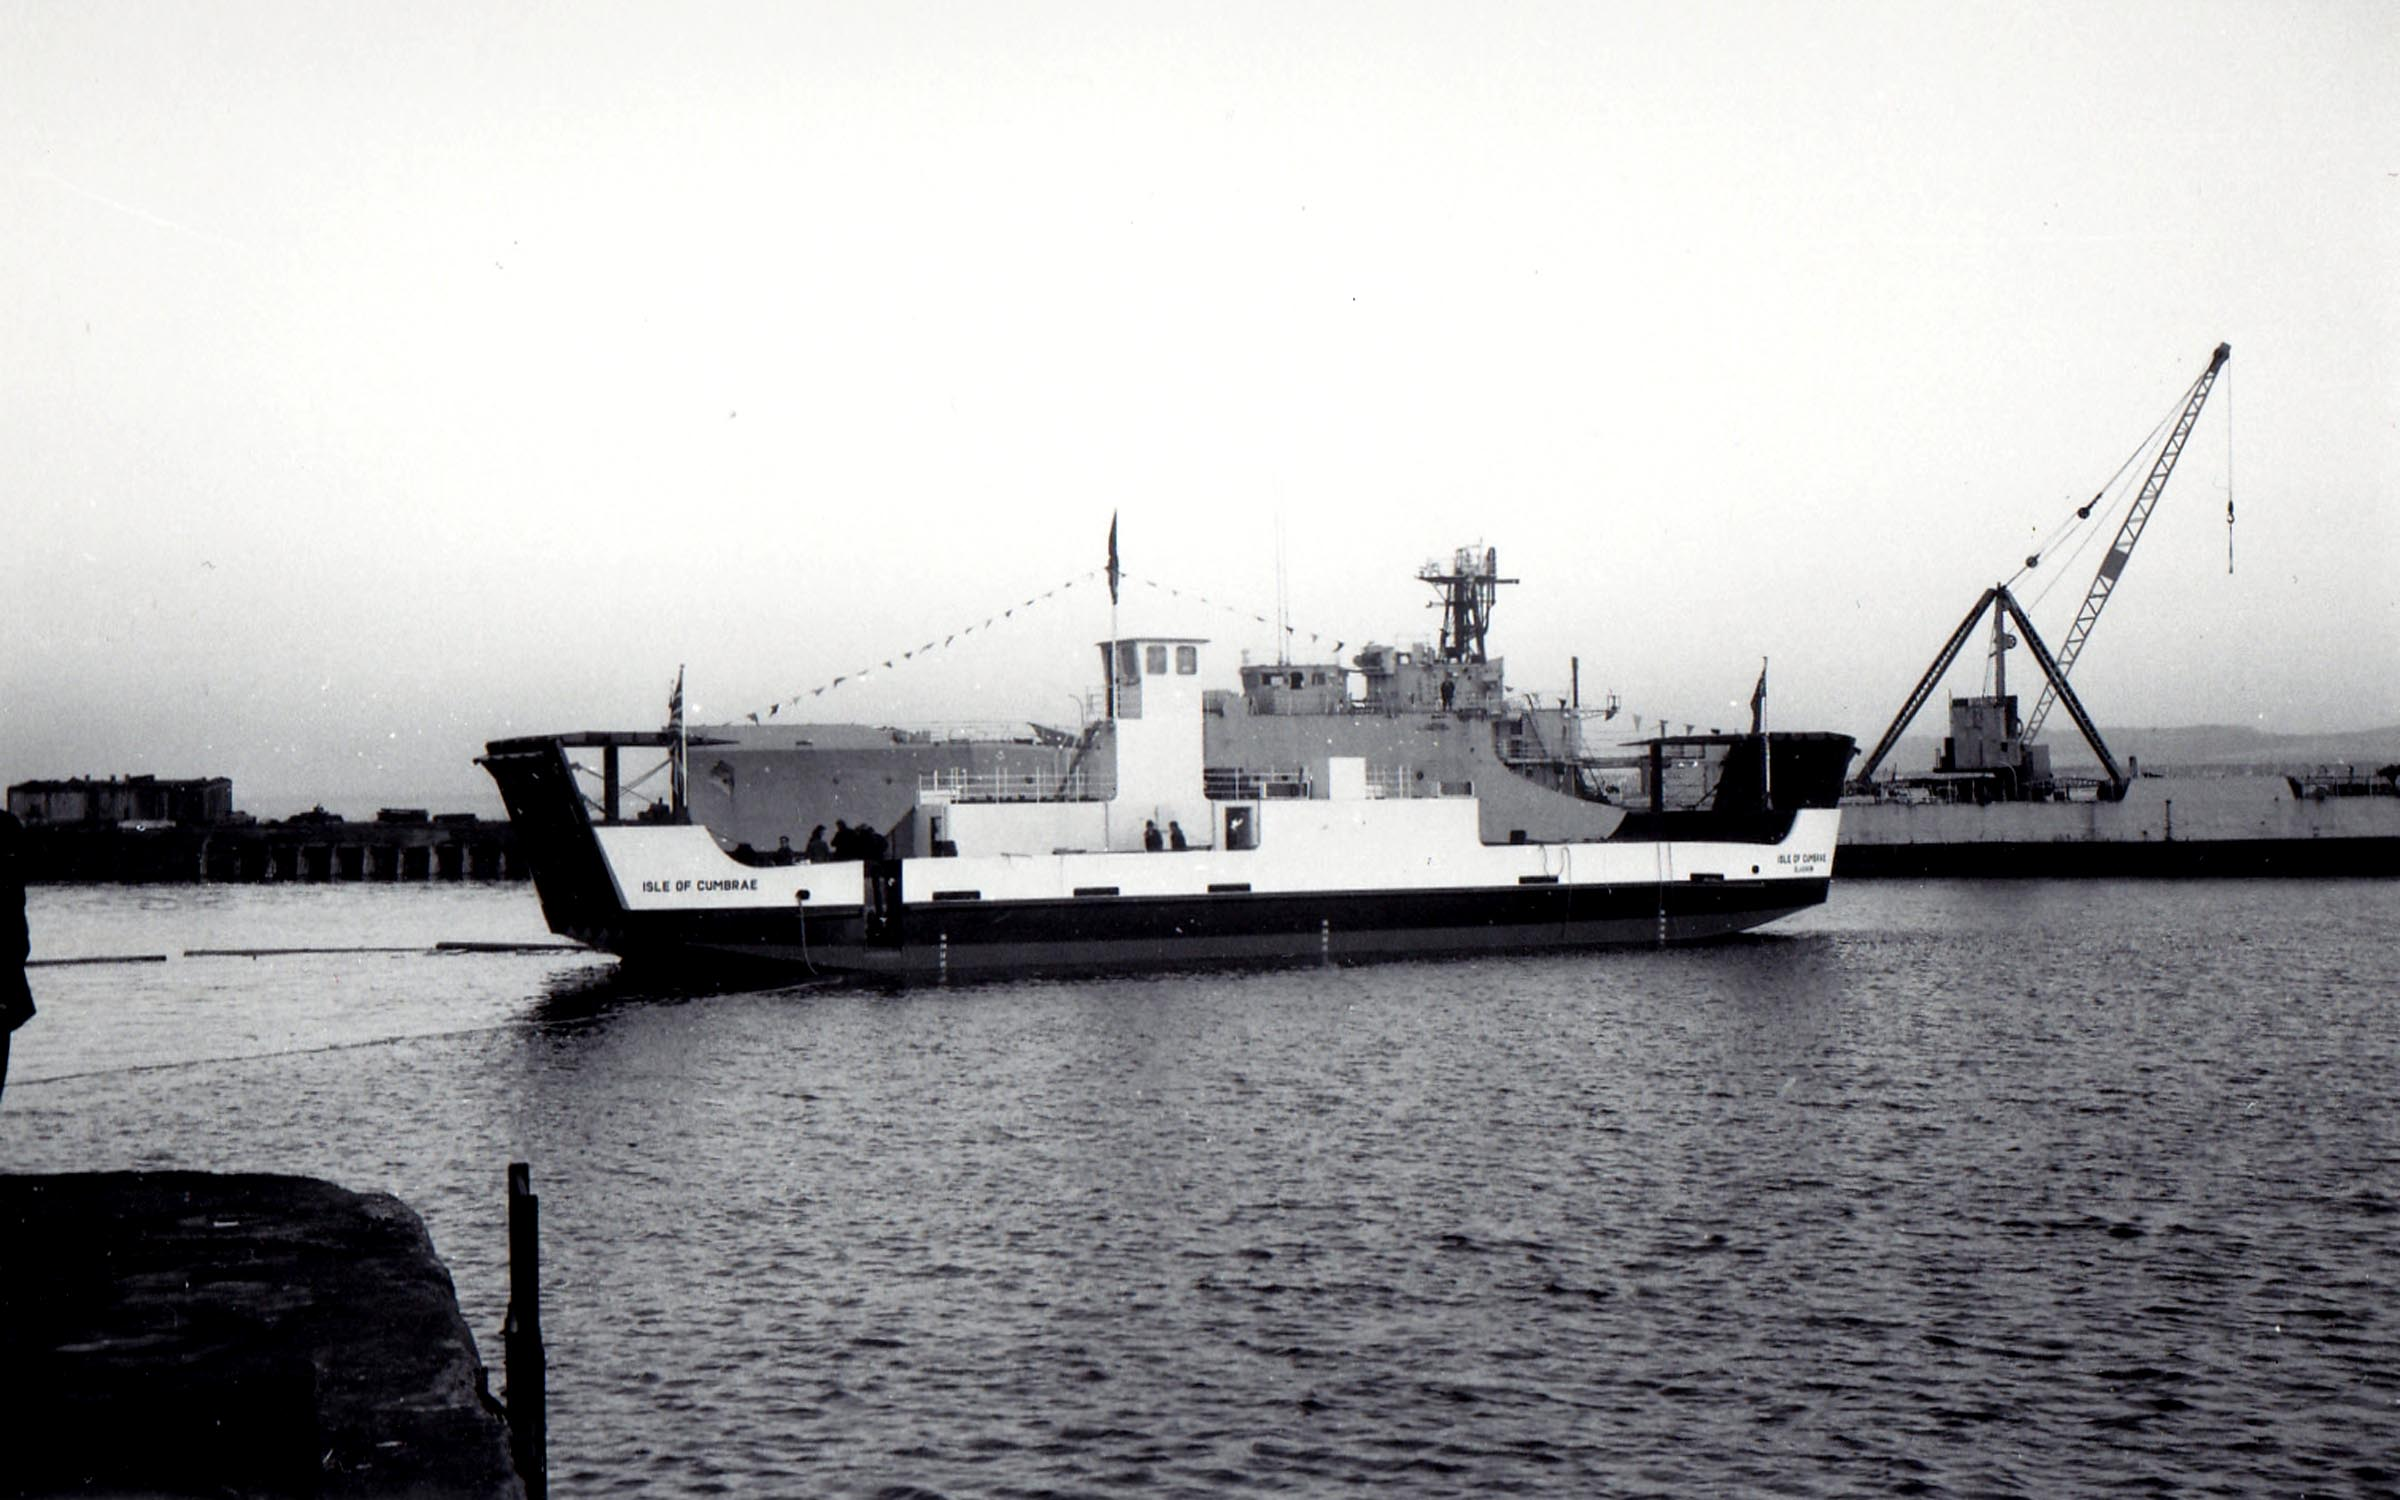 Isle of Cumbrae being launched (Jim Aikman Smith)